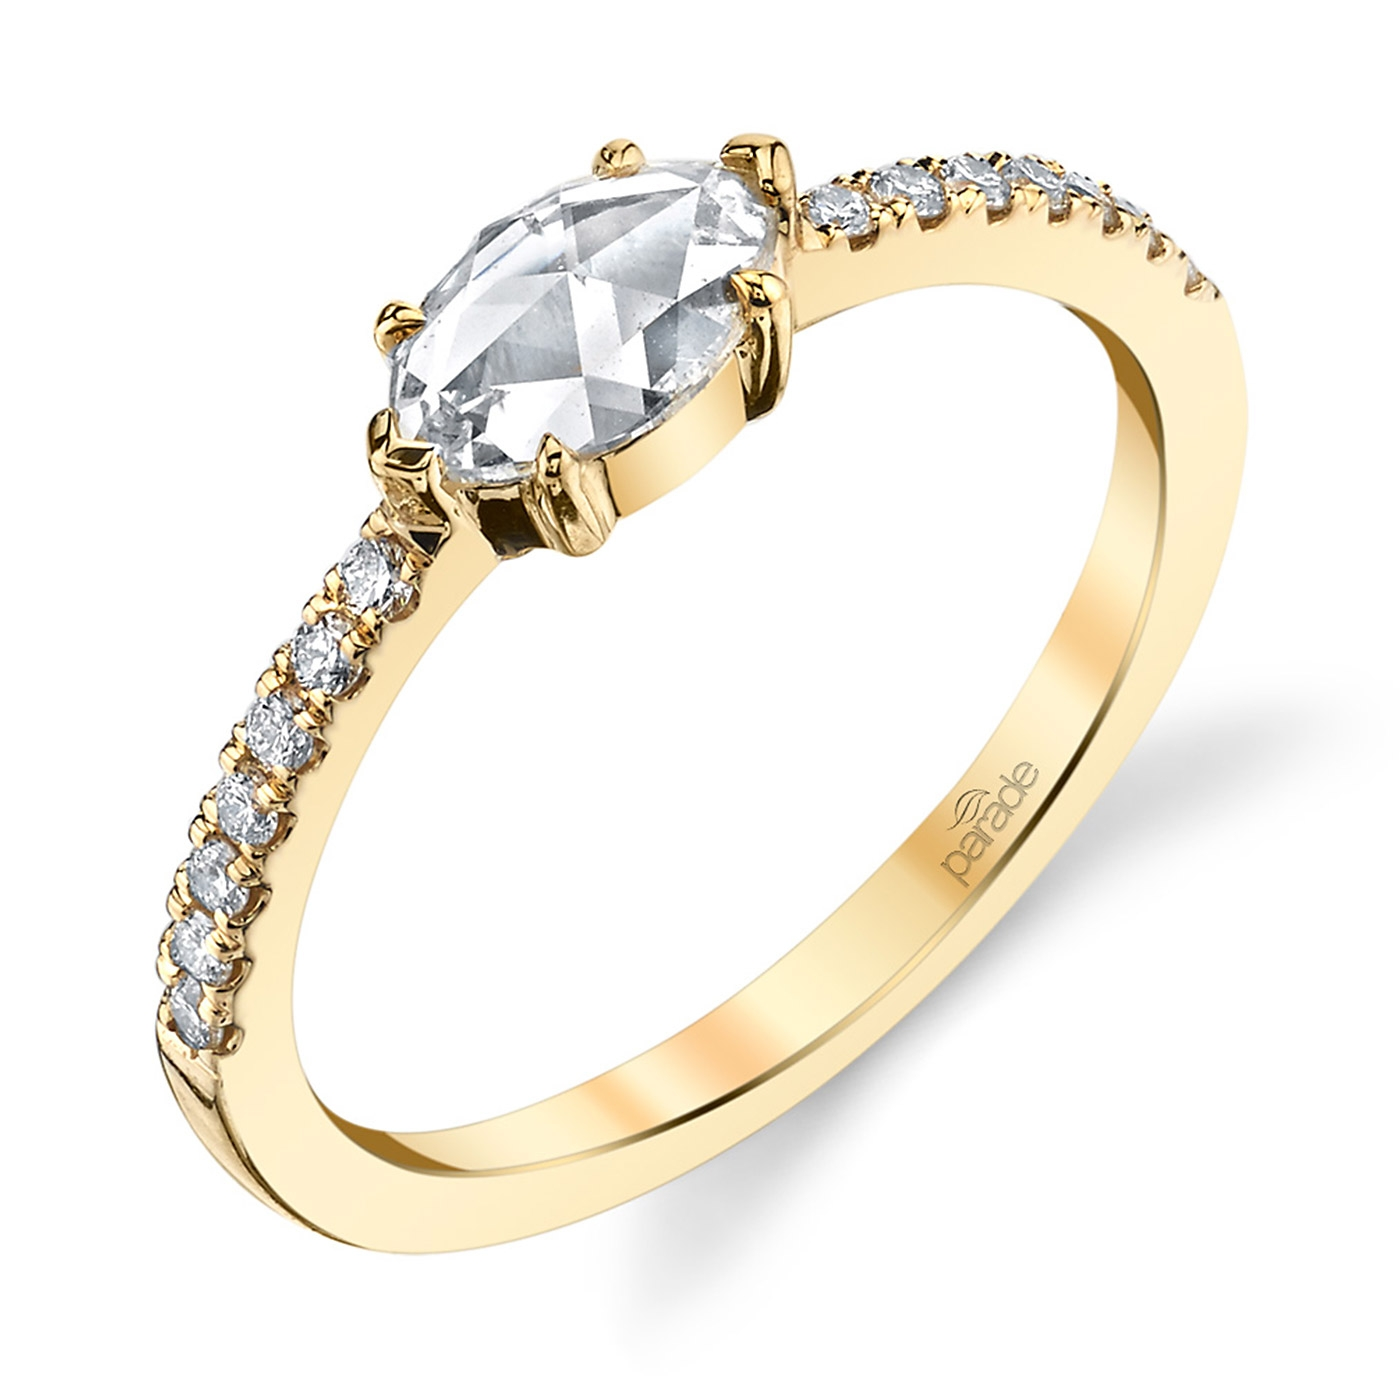 Parade Lumiere Bridal 18 Karat Diamond Engagement Ring LMBR3997